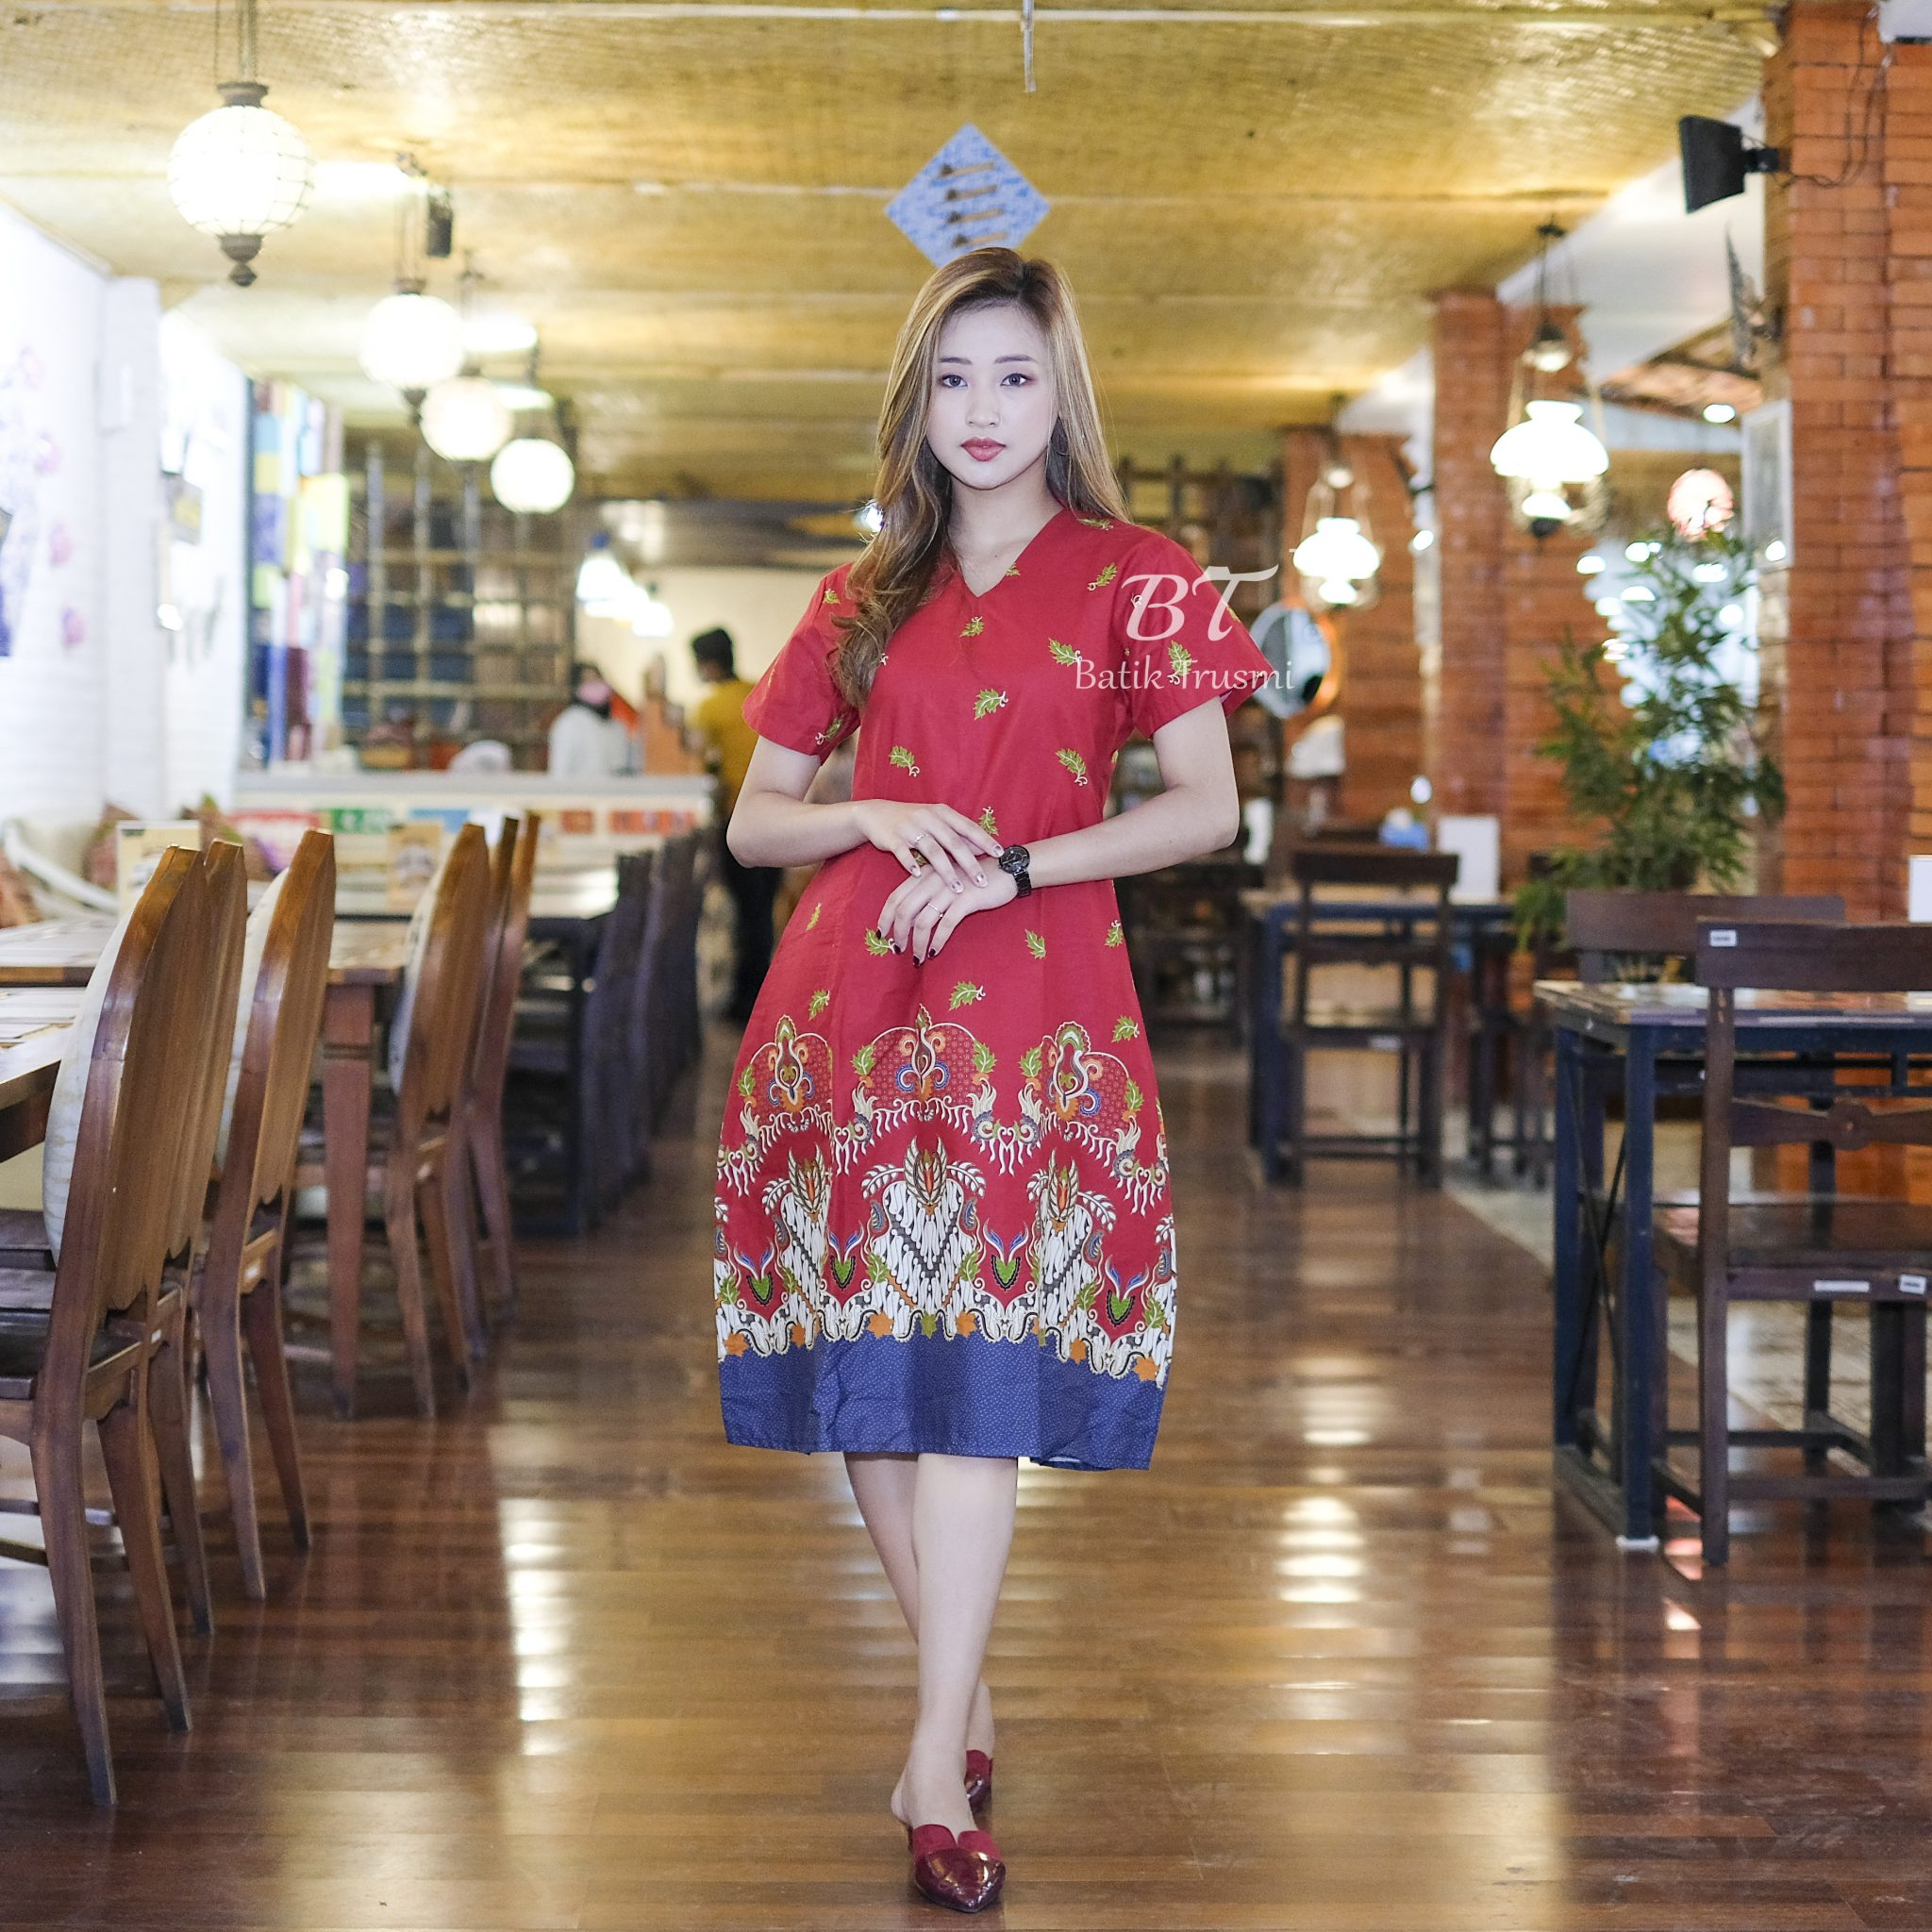 BATIK TRUSMI - DRESS SANGHAI IMLEK EDITION